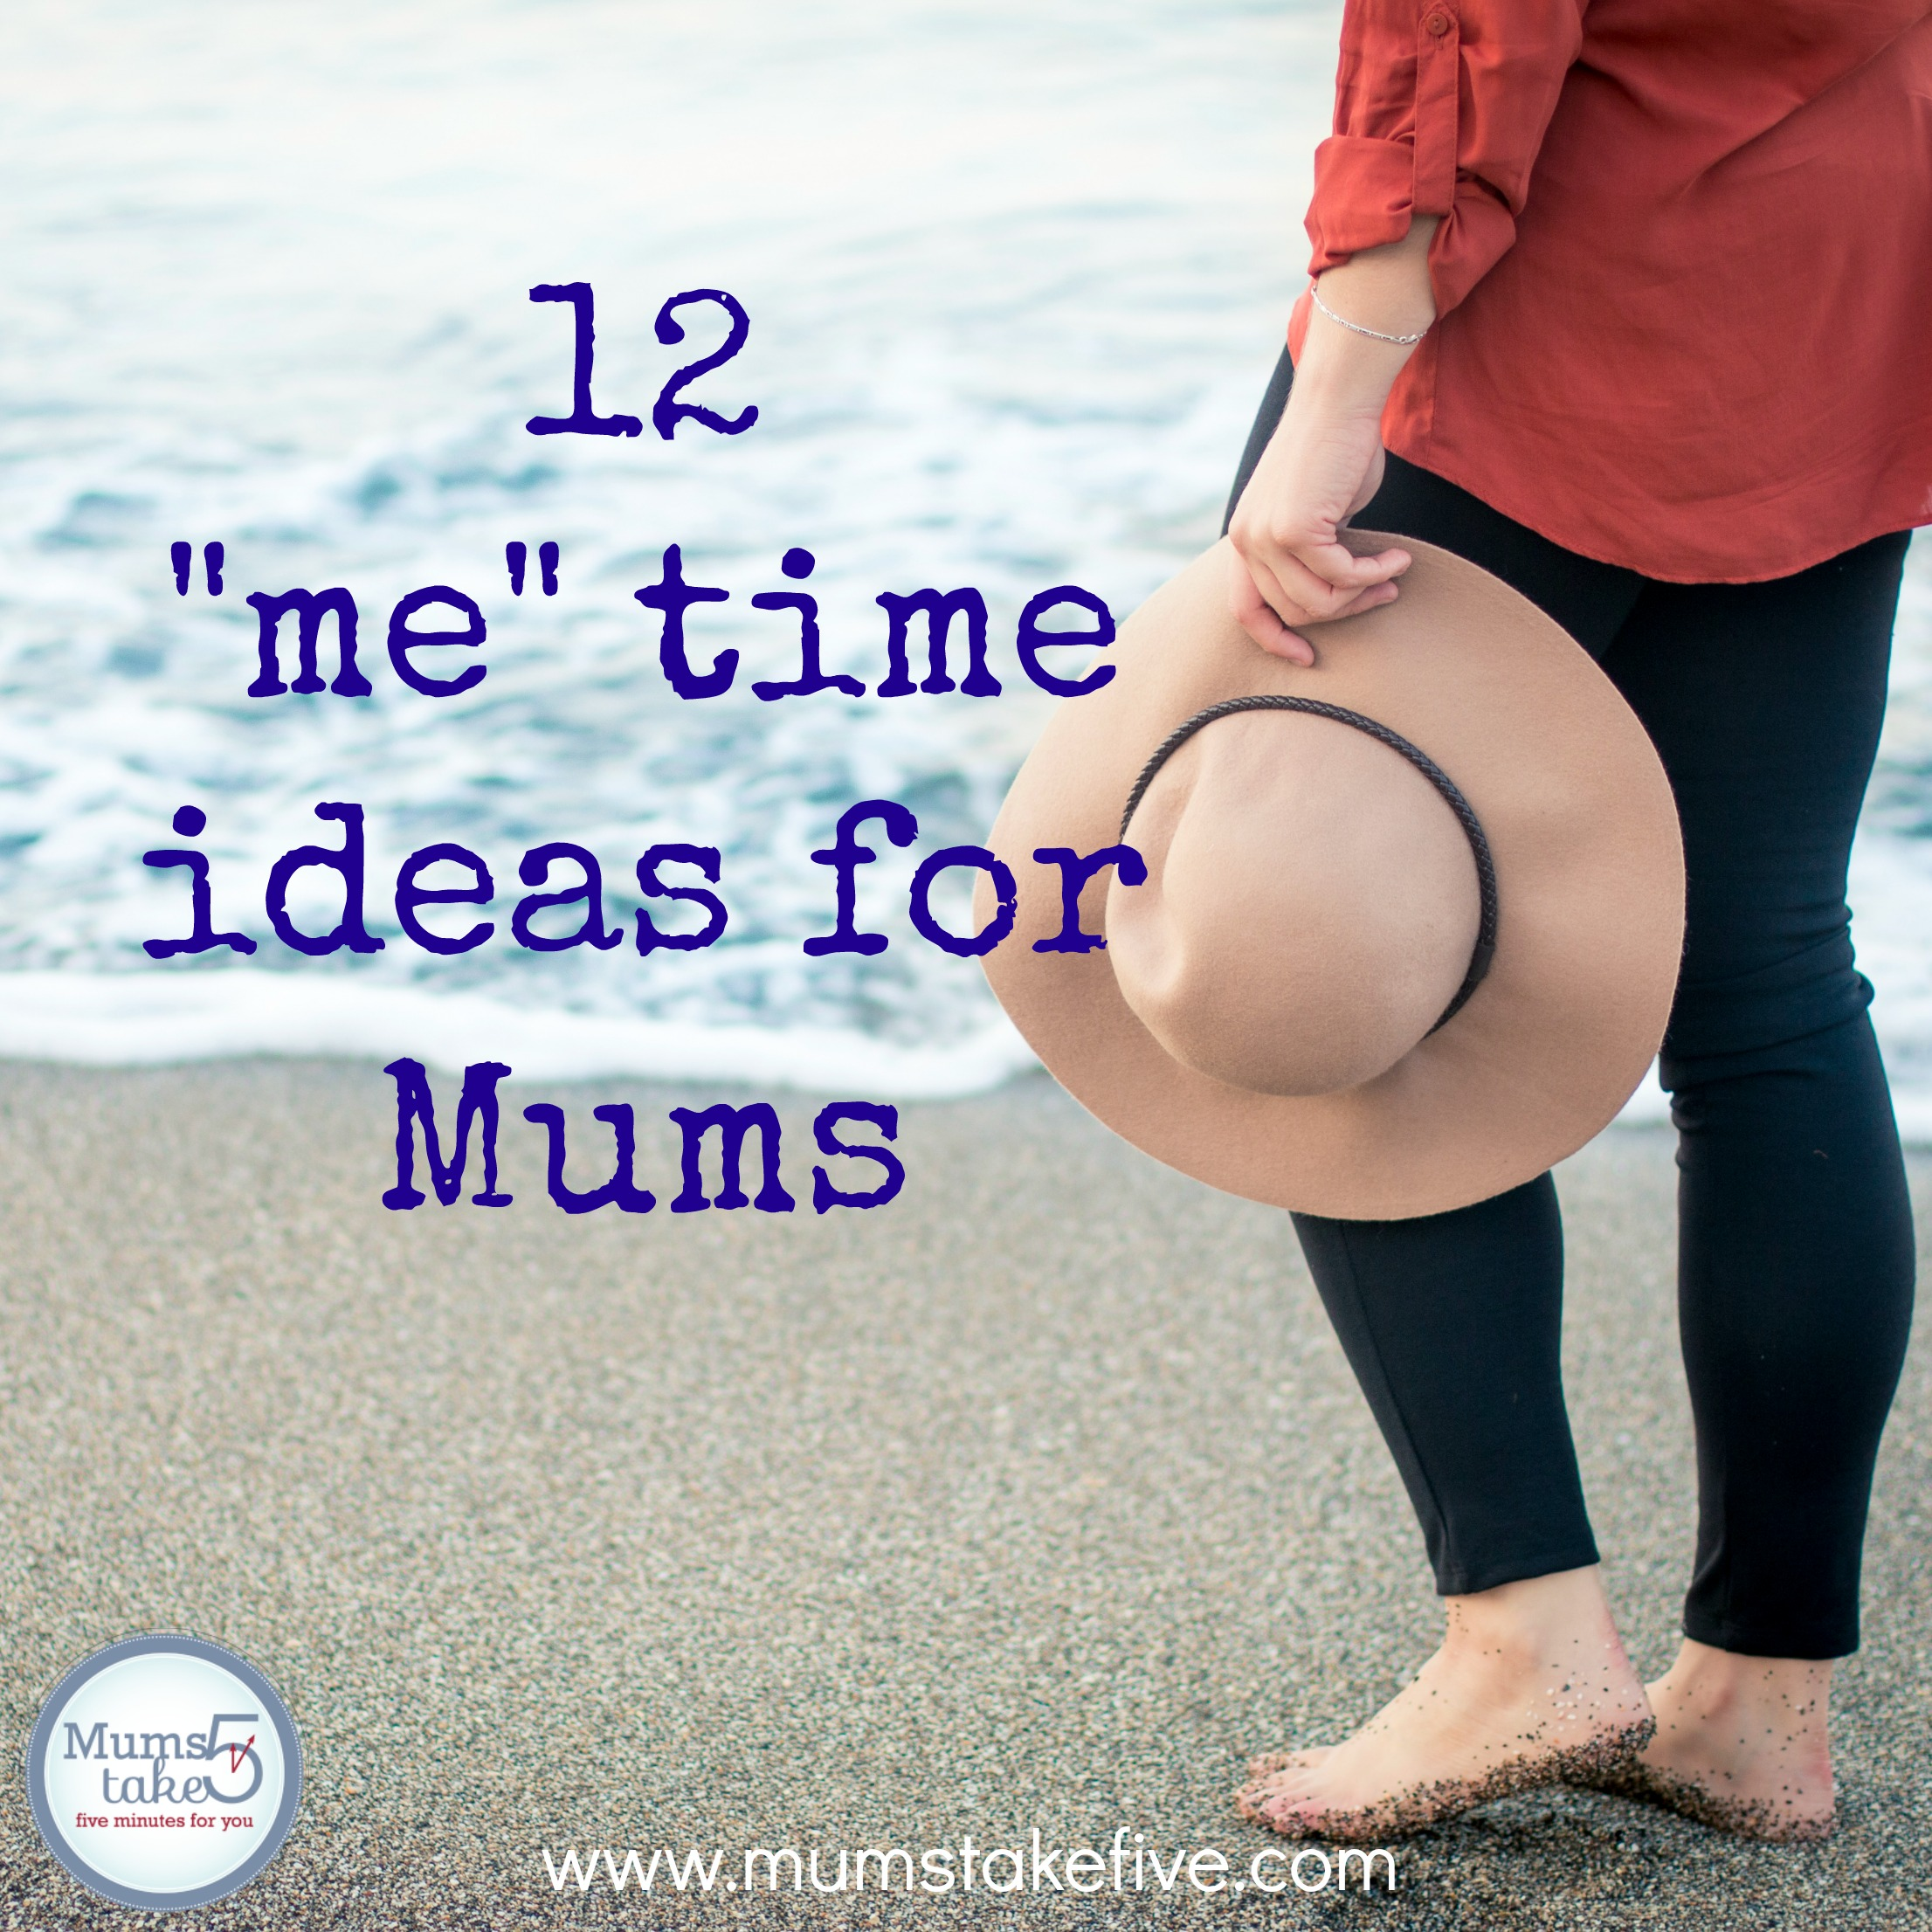 12 Top Tips for Me time